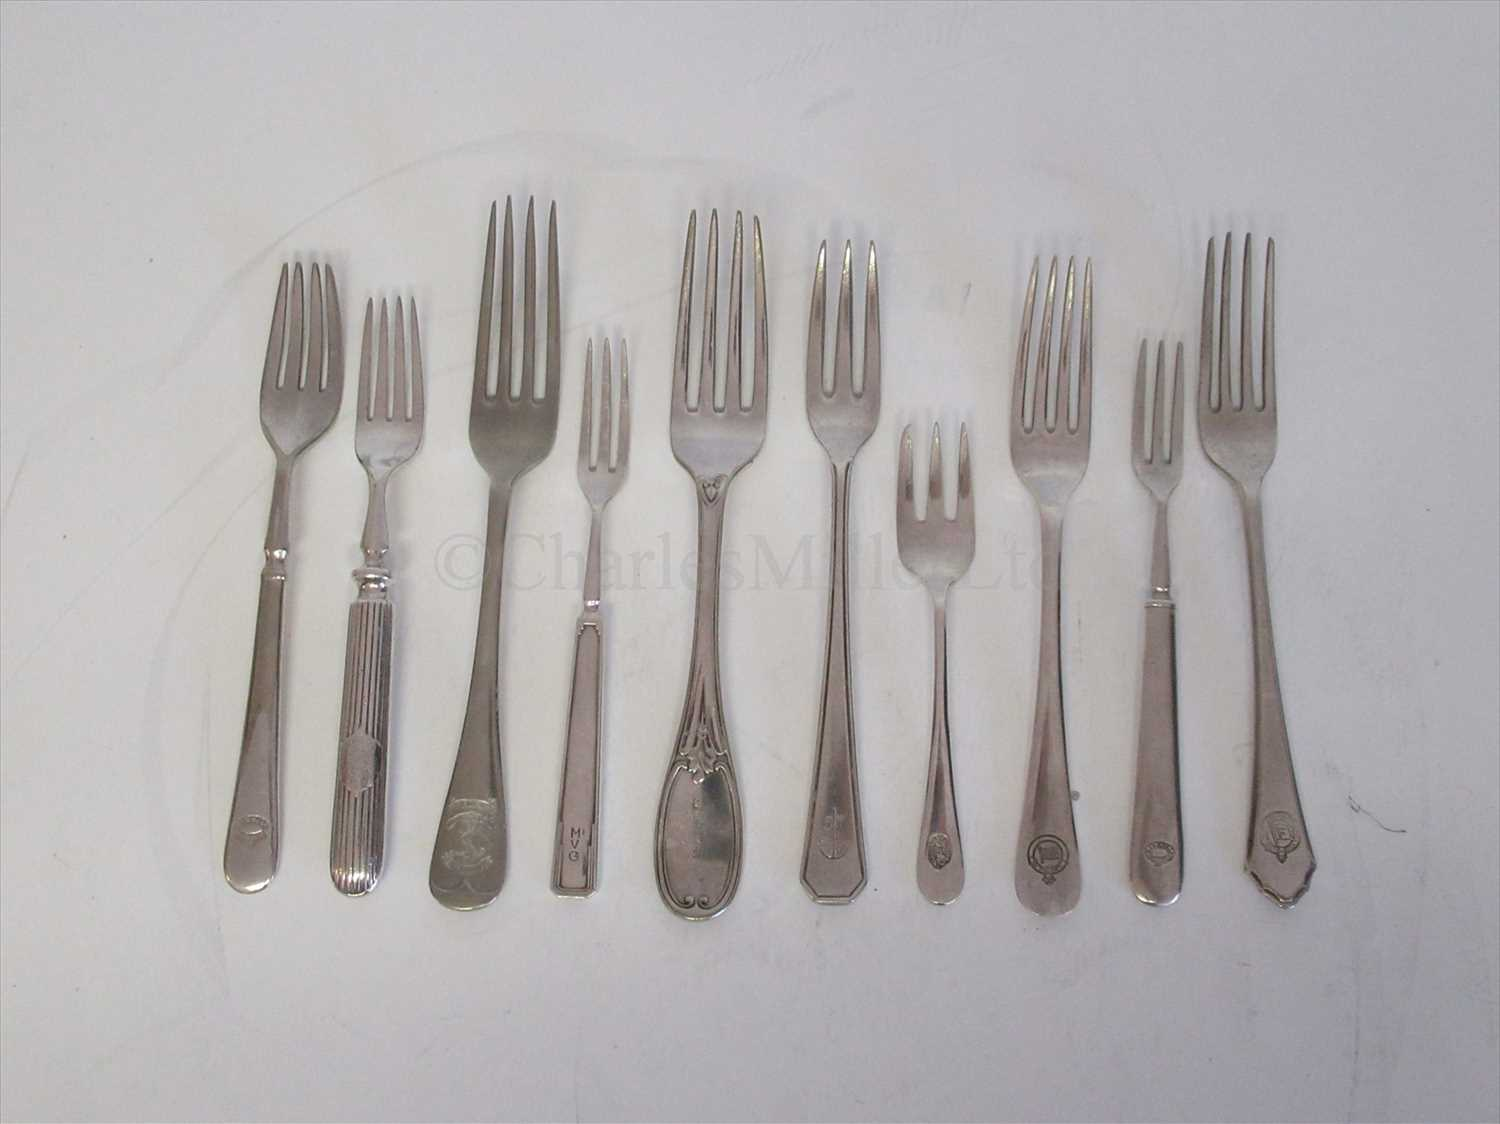 Lot 8-PLATED FLATWARE:  TEN FORKS FROM ASSORTED SHIPPING COMPANIES